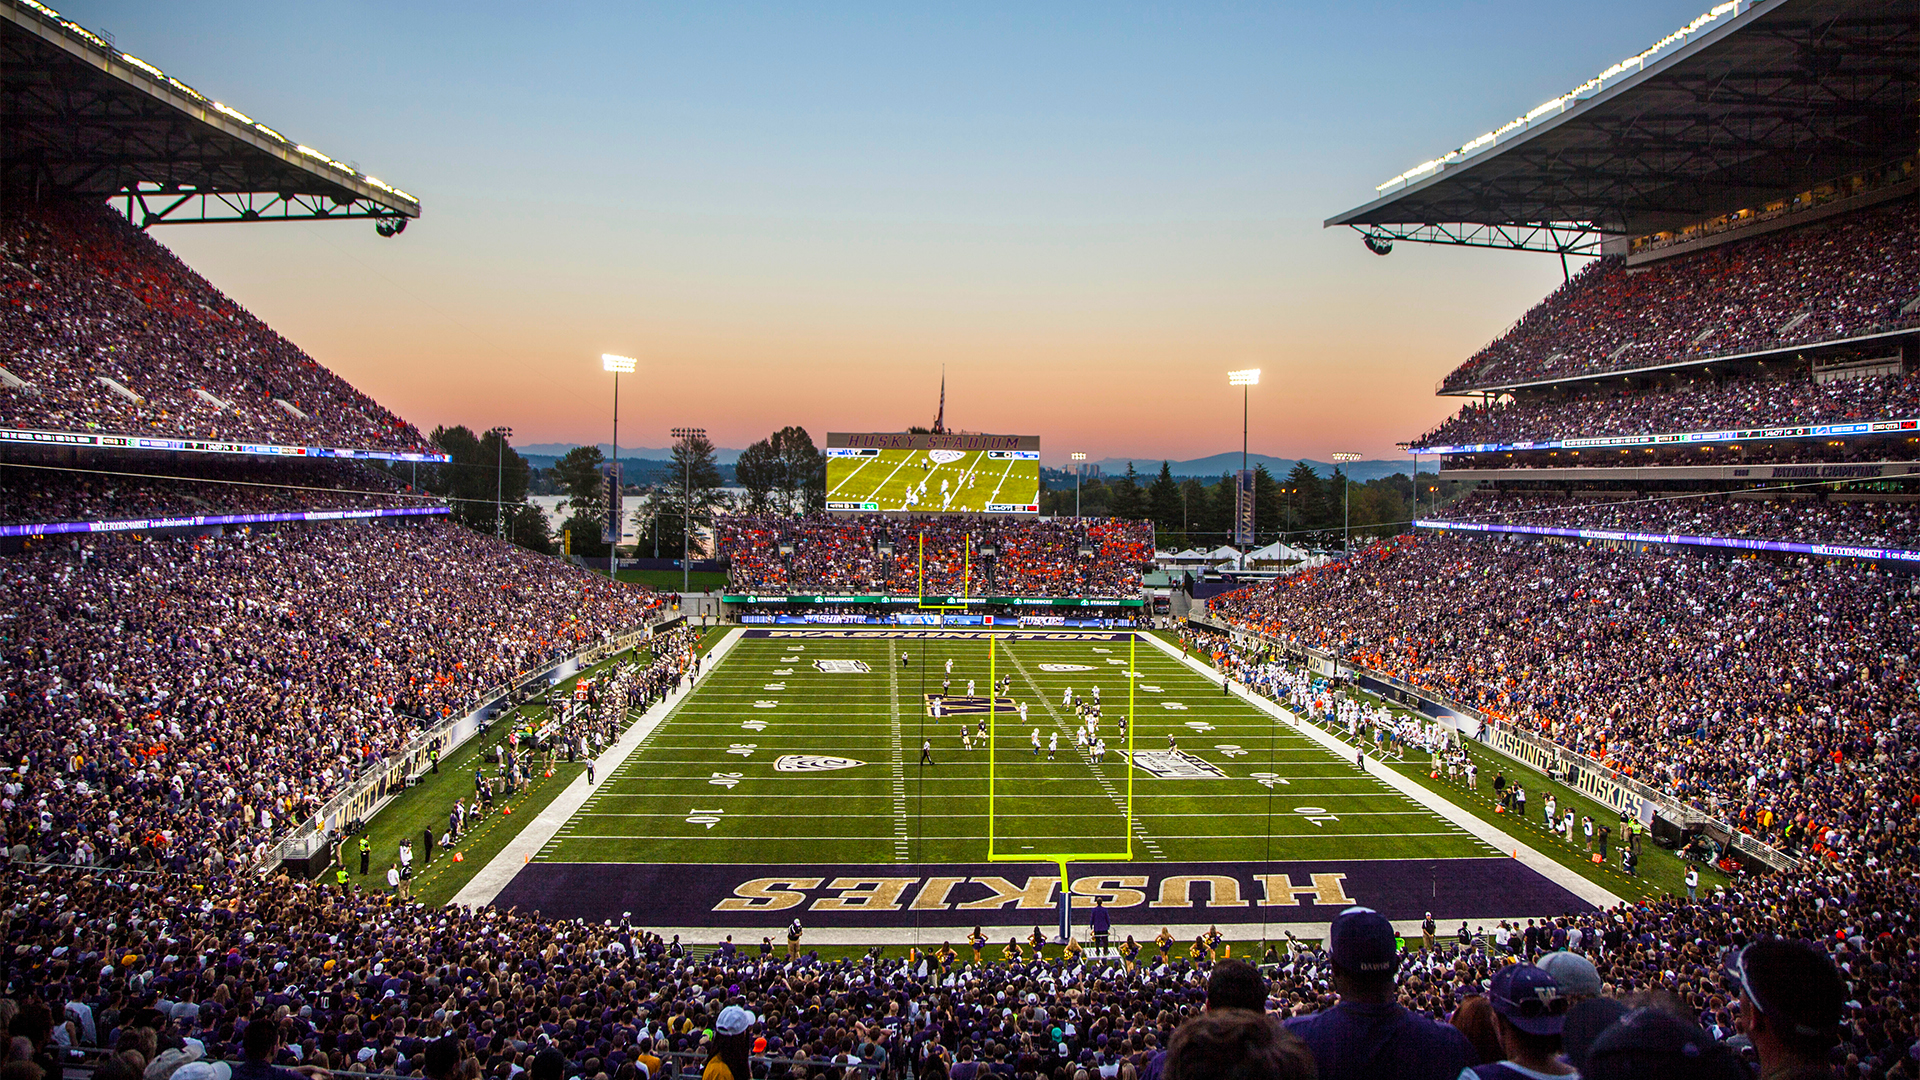 Husky Stadium at sunset